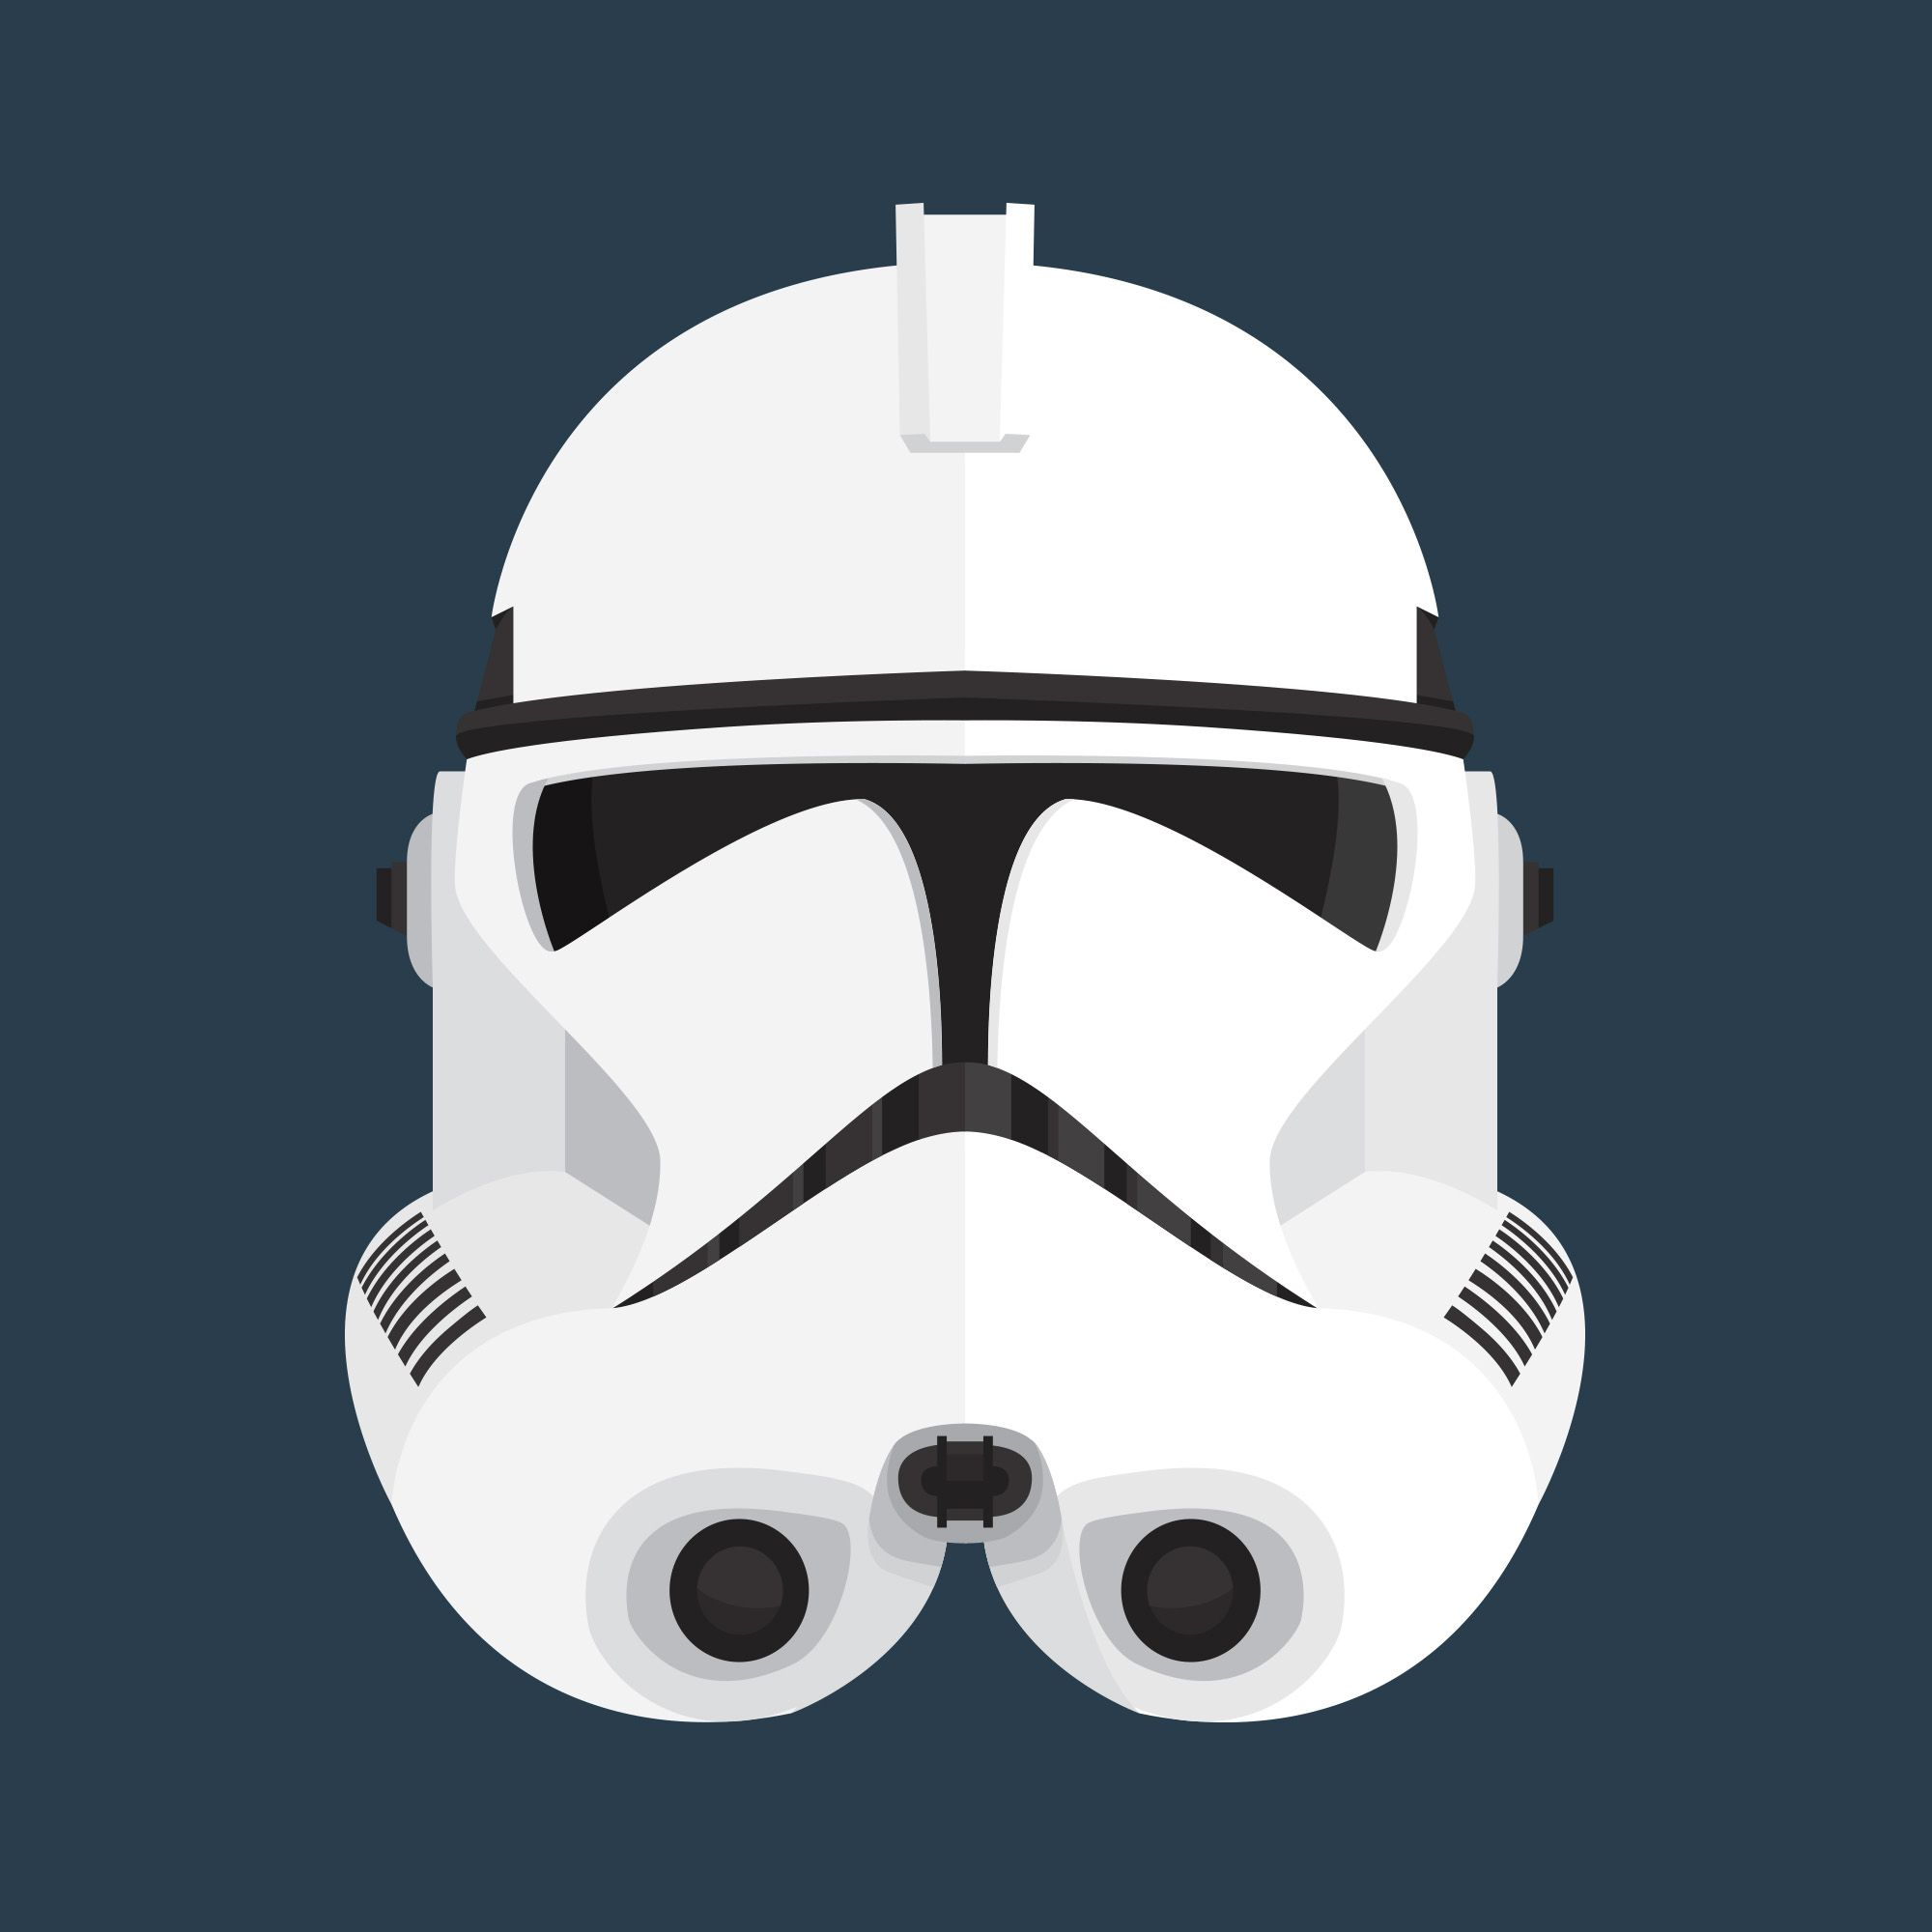 helmets of starwars - Google Search | CNC Ideas ...